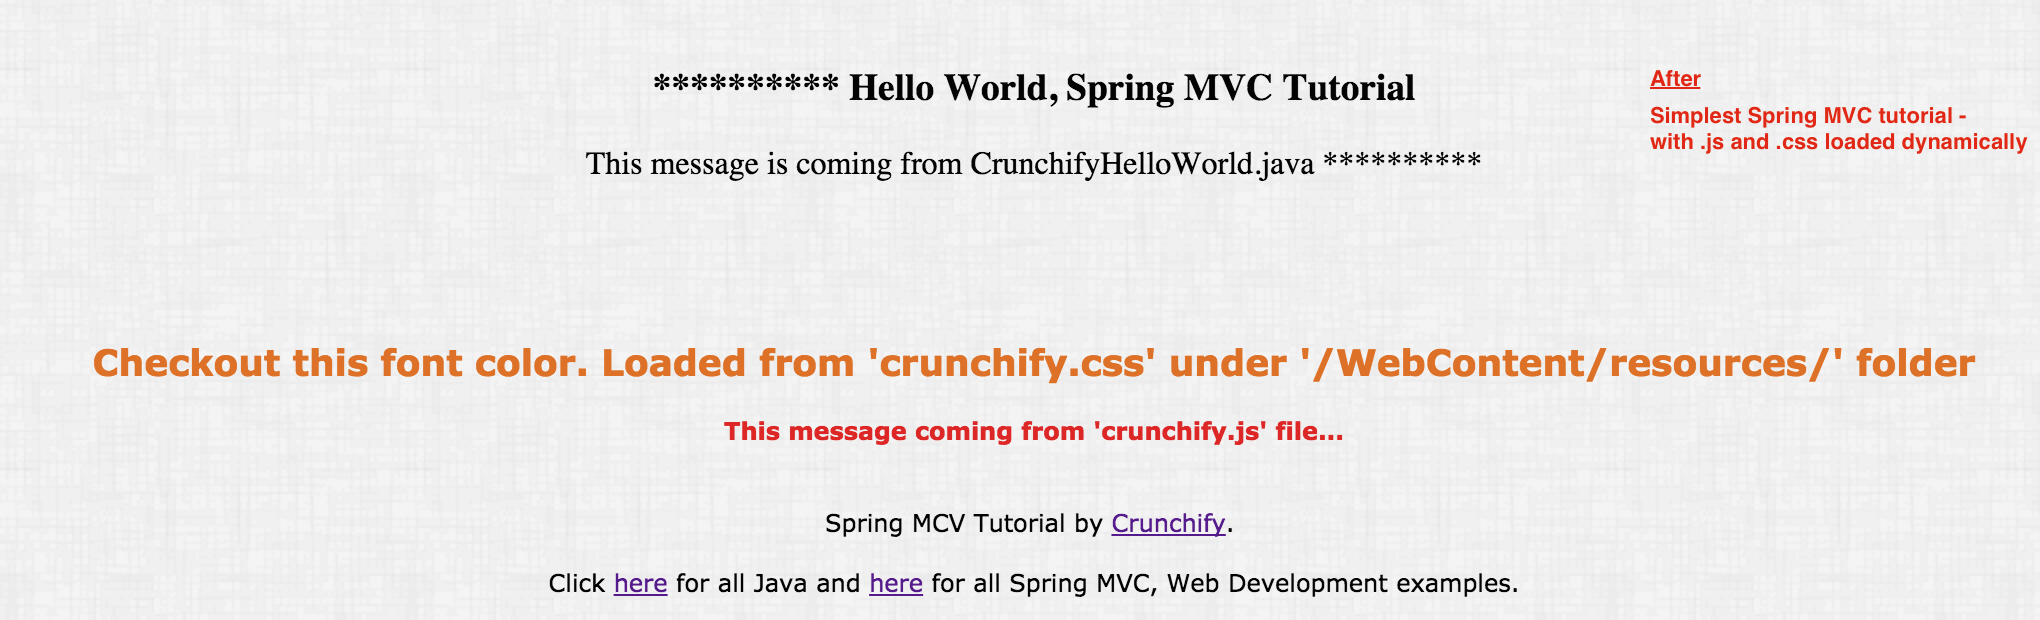 Spring MVC 4 2 2 - Best way to Add/Integrate JS, CSS and